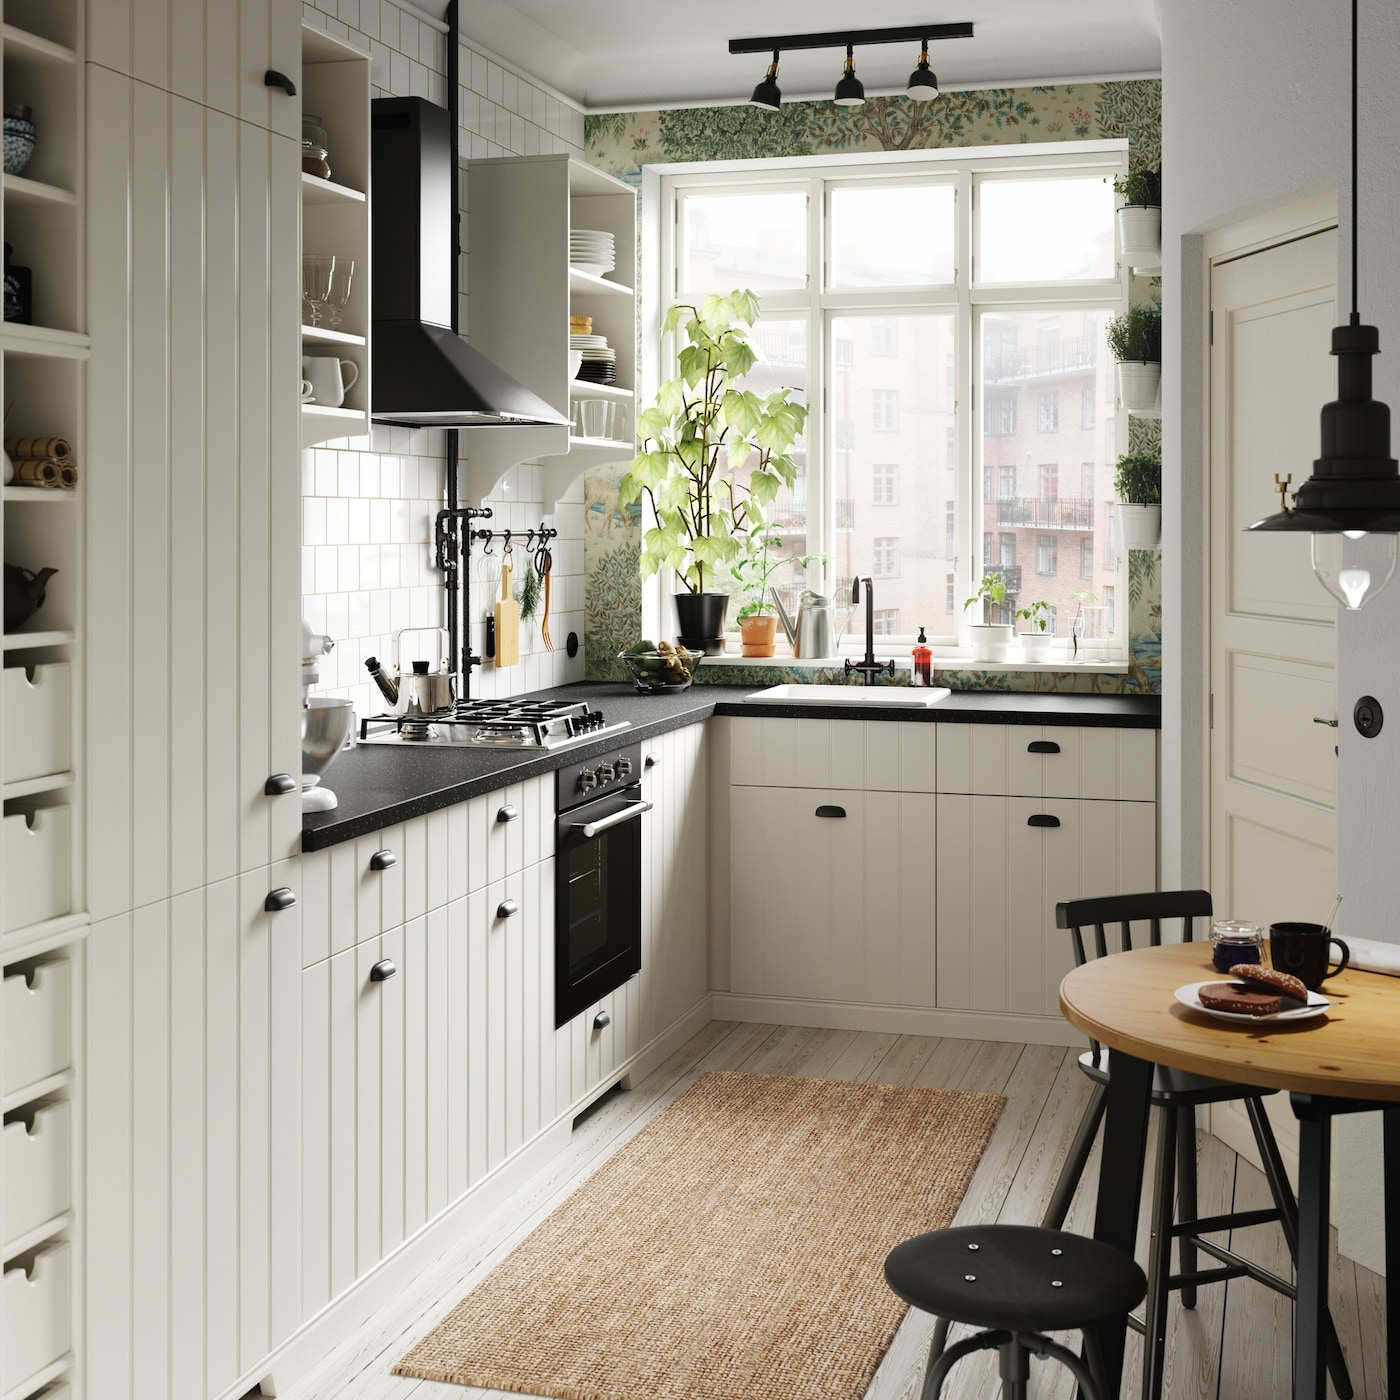 Ikea Com Kitchen: Cosy Cottage Kitchen In The Big City